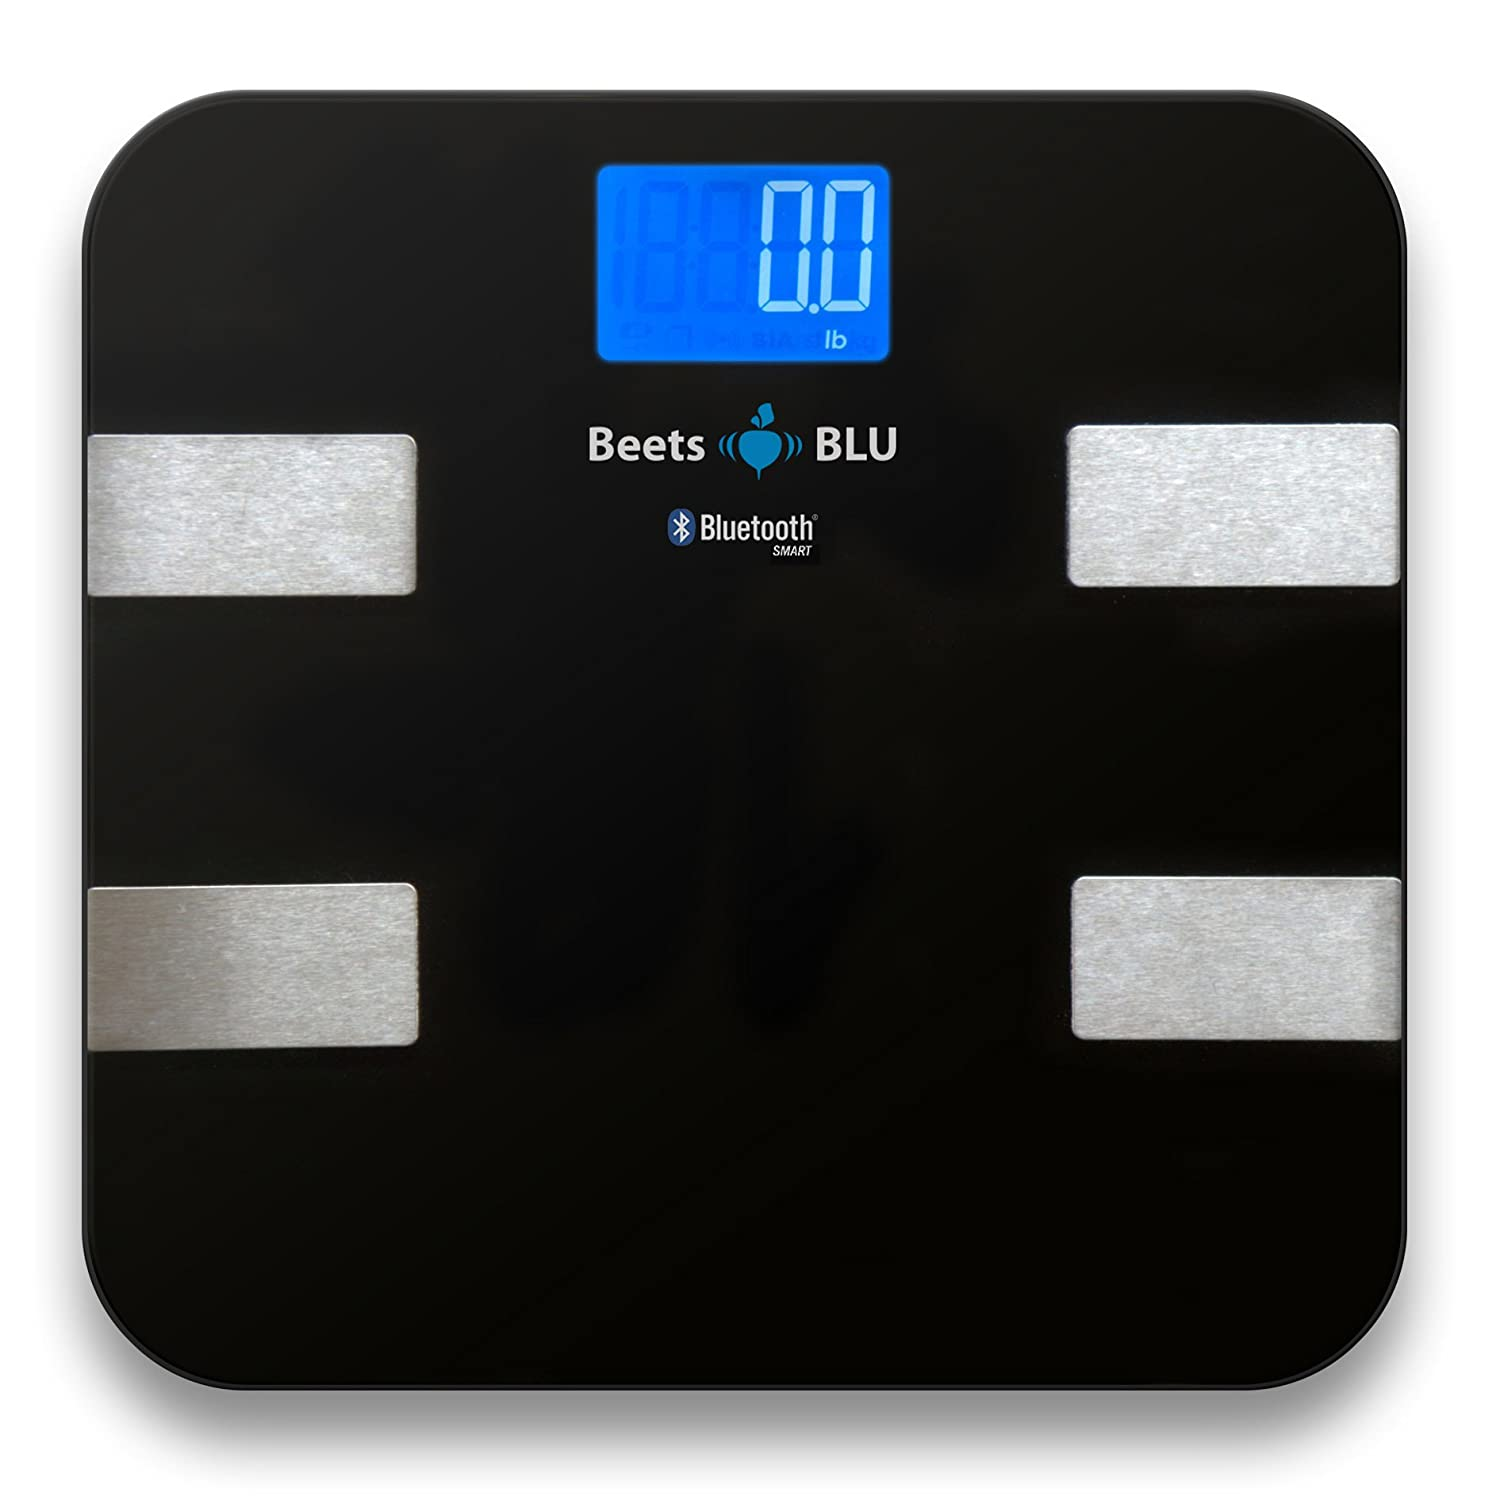 Amazon scale bathroom - Amazon Com Beets Blu Digital Bathroom Scale Or Weight Scale With Body Composition Smart Scale Works With Iphone Android And Ipad Health Personal Care